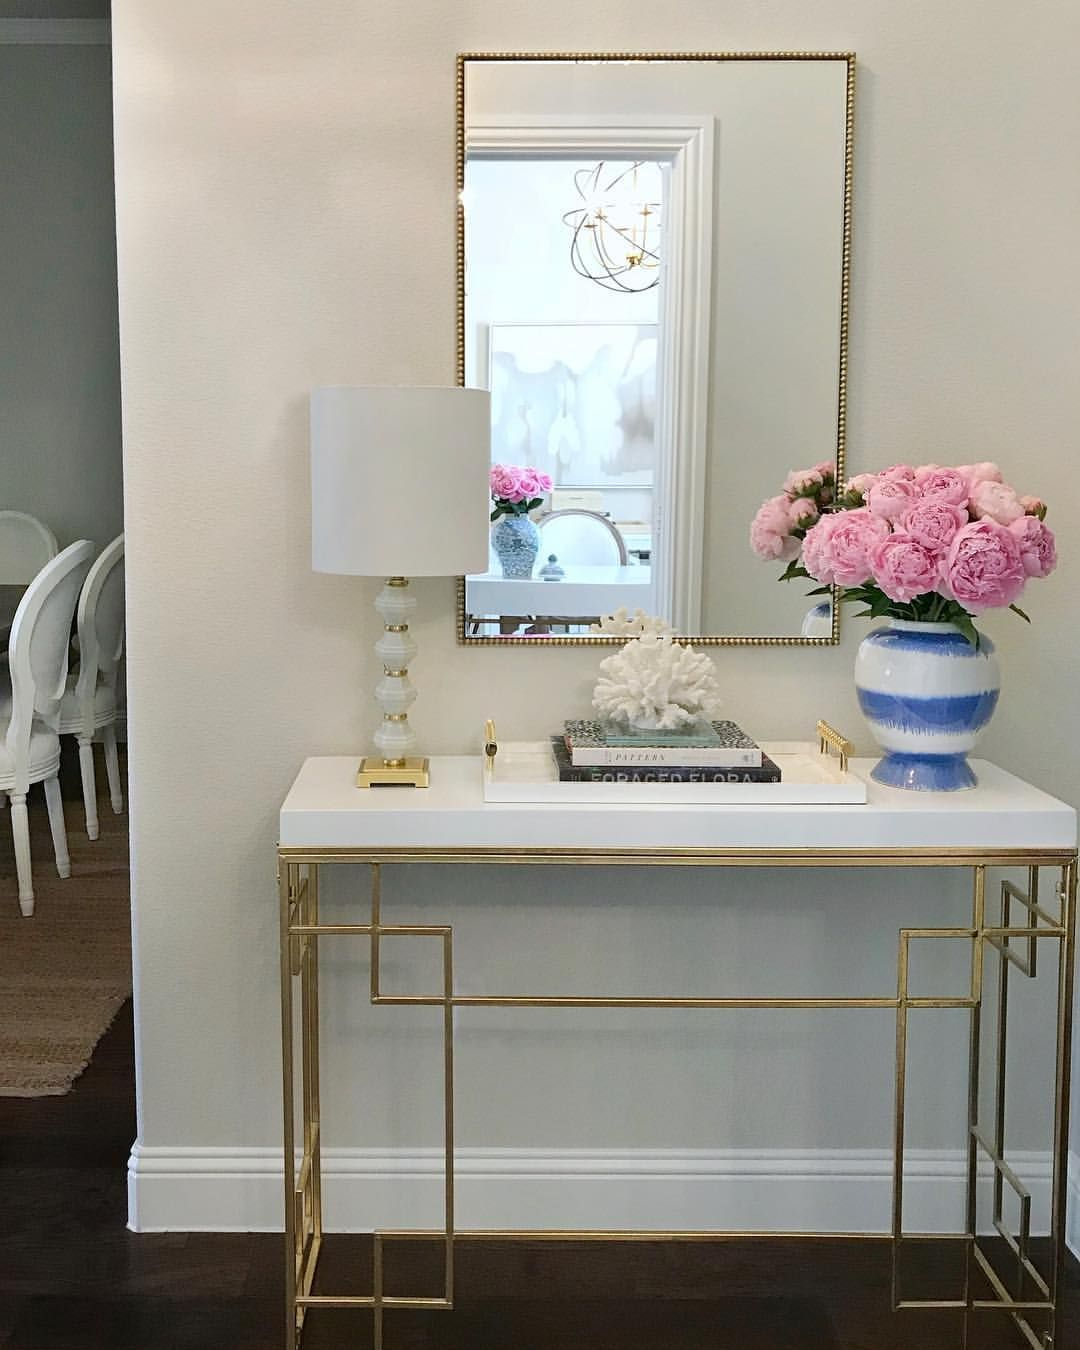 Pink Peonies Entryway Decor Entry Way Table Gold And White Entry Table Gold Console Blue Modern Entry Table Entryway Table Decor Console Table Decorating